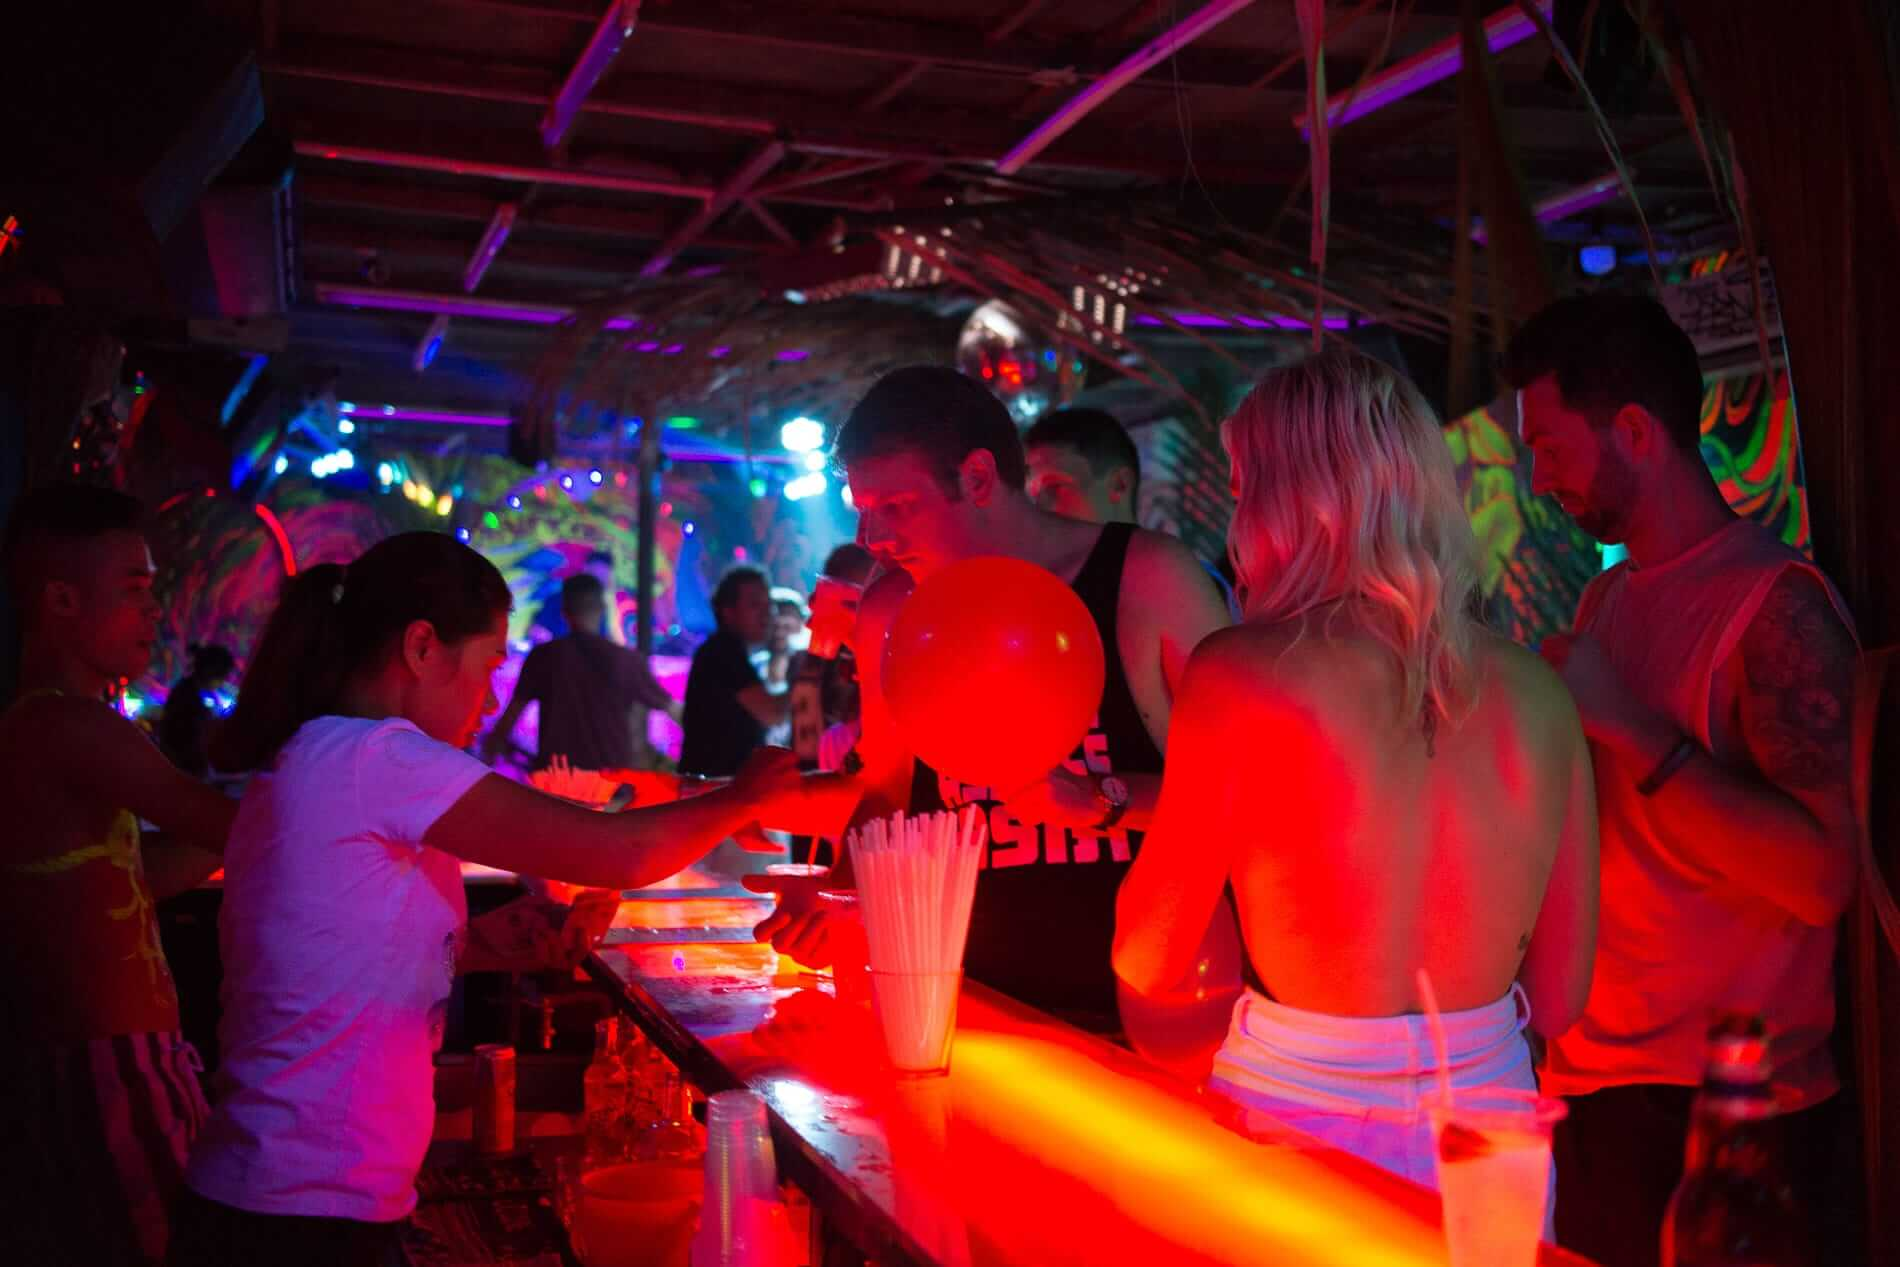 Drinks and party balloons at Hair of the Dog Bar in Hoi An.